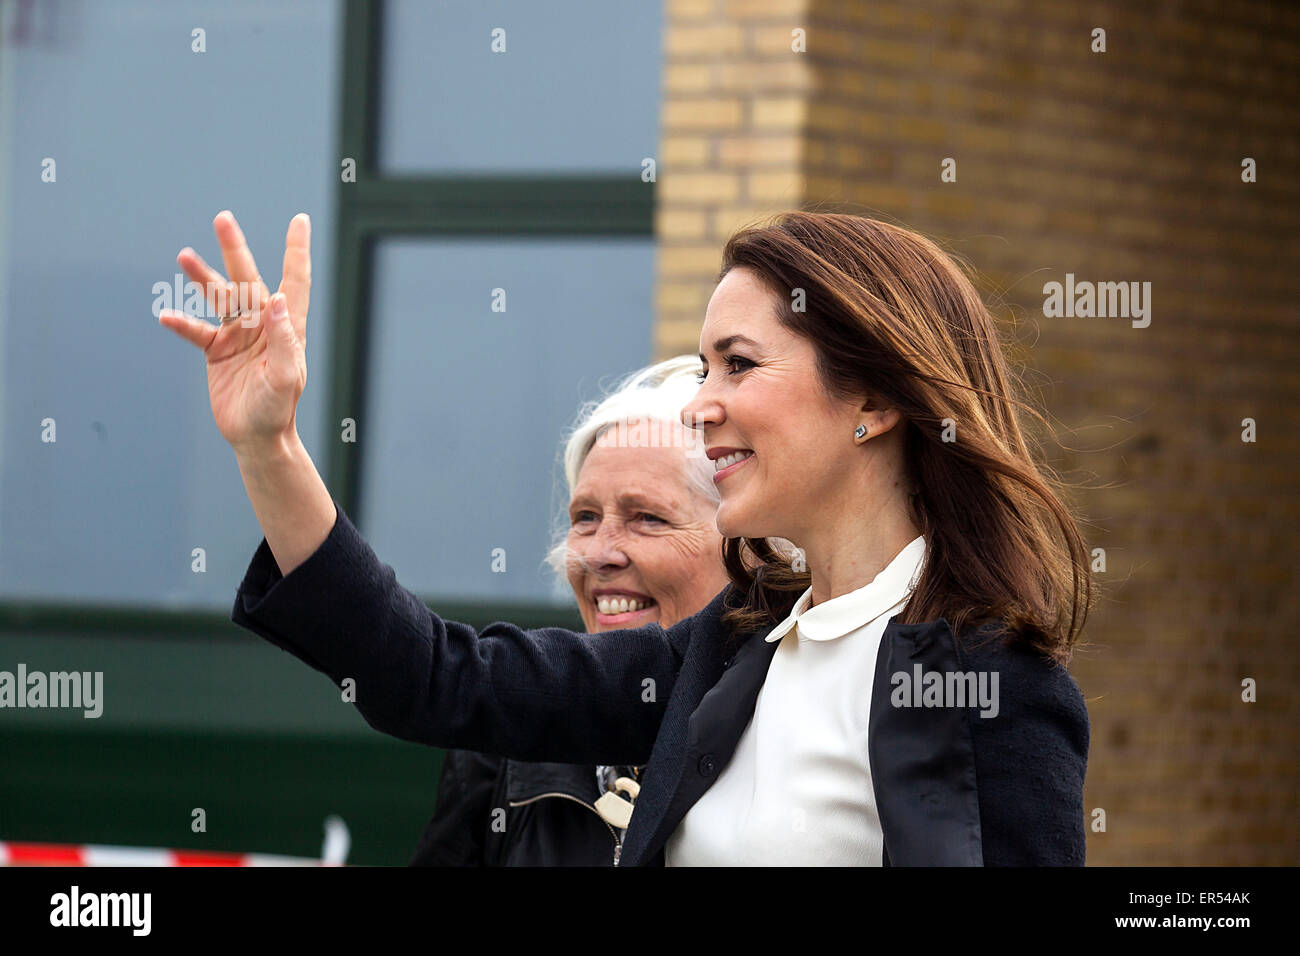 Ruds Vedby, Denmark. 27th May, 2015. Princess Mary waves to the bystanders at Ruds Vedby school. The Princess visited - Stock Image